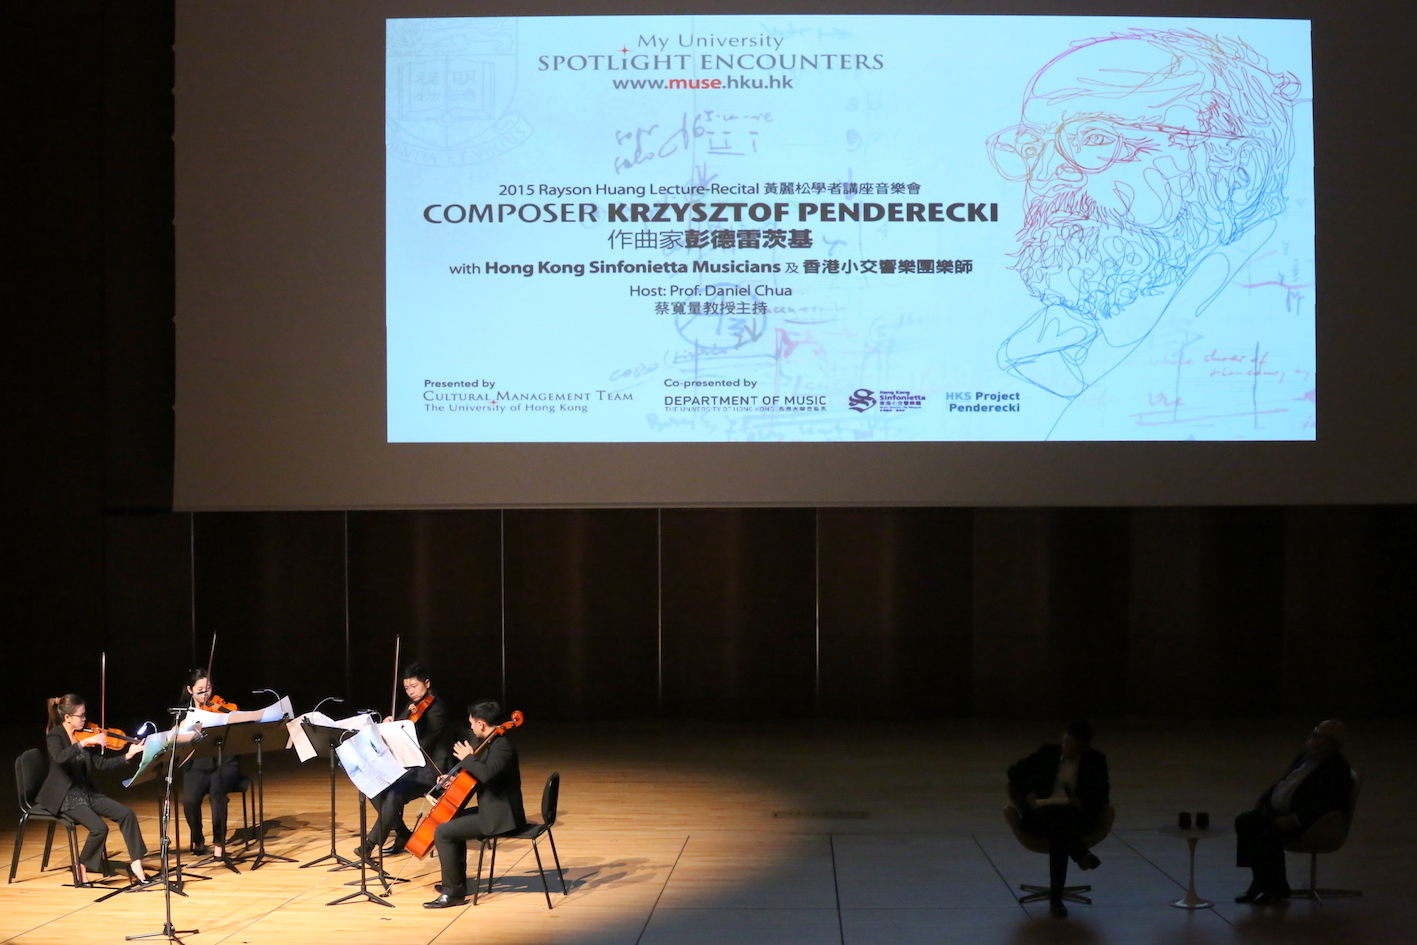 Rayson Huang Lecture Recital with Penderecki_9c_HK Sinfonietta Ltd